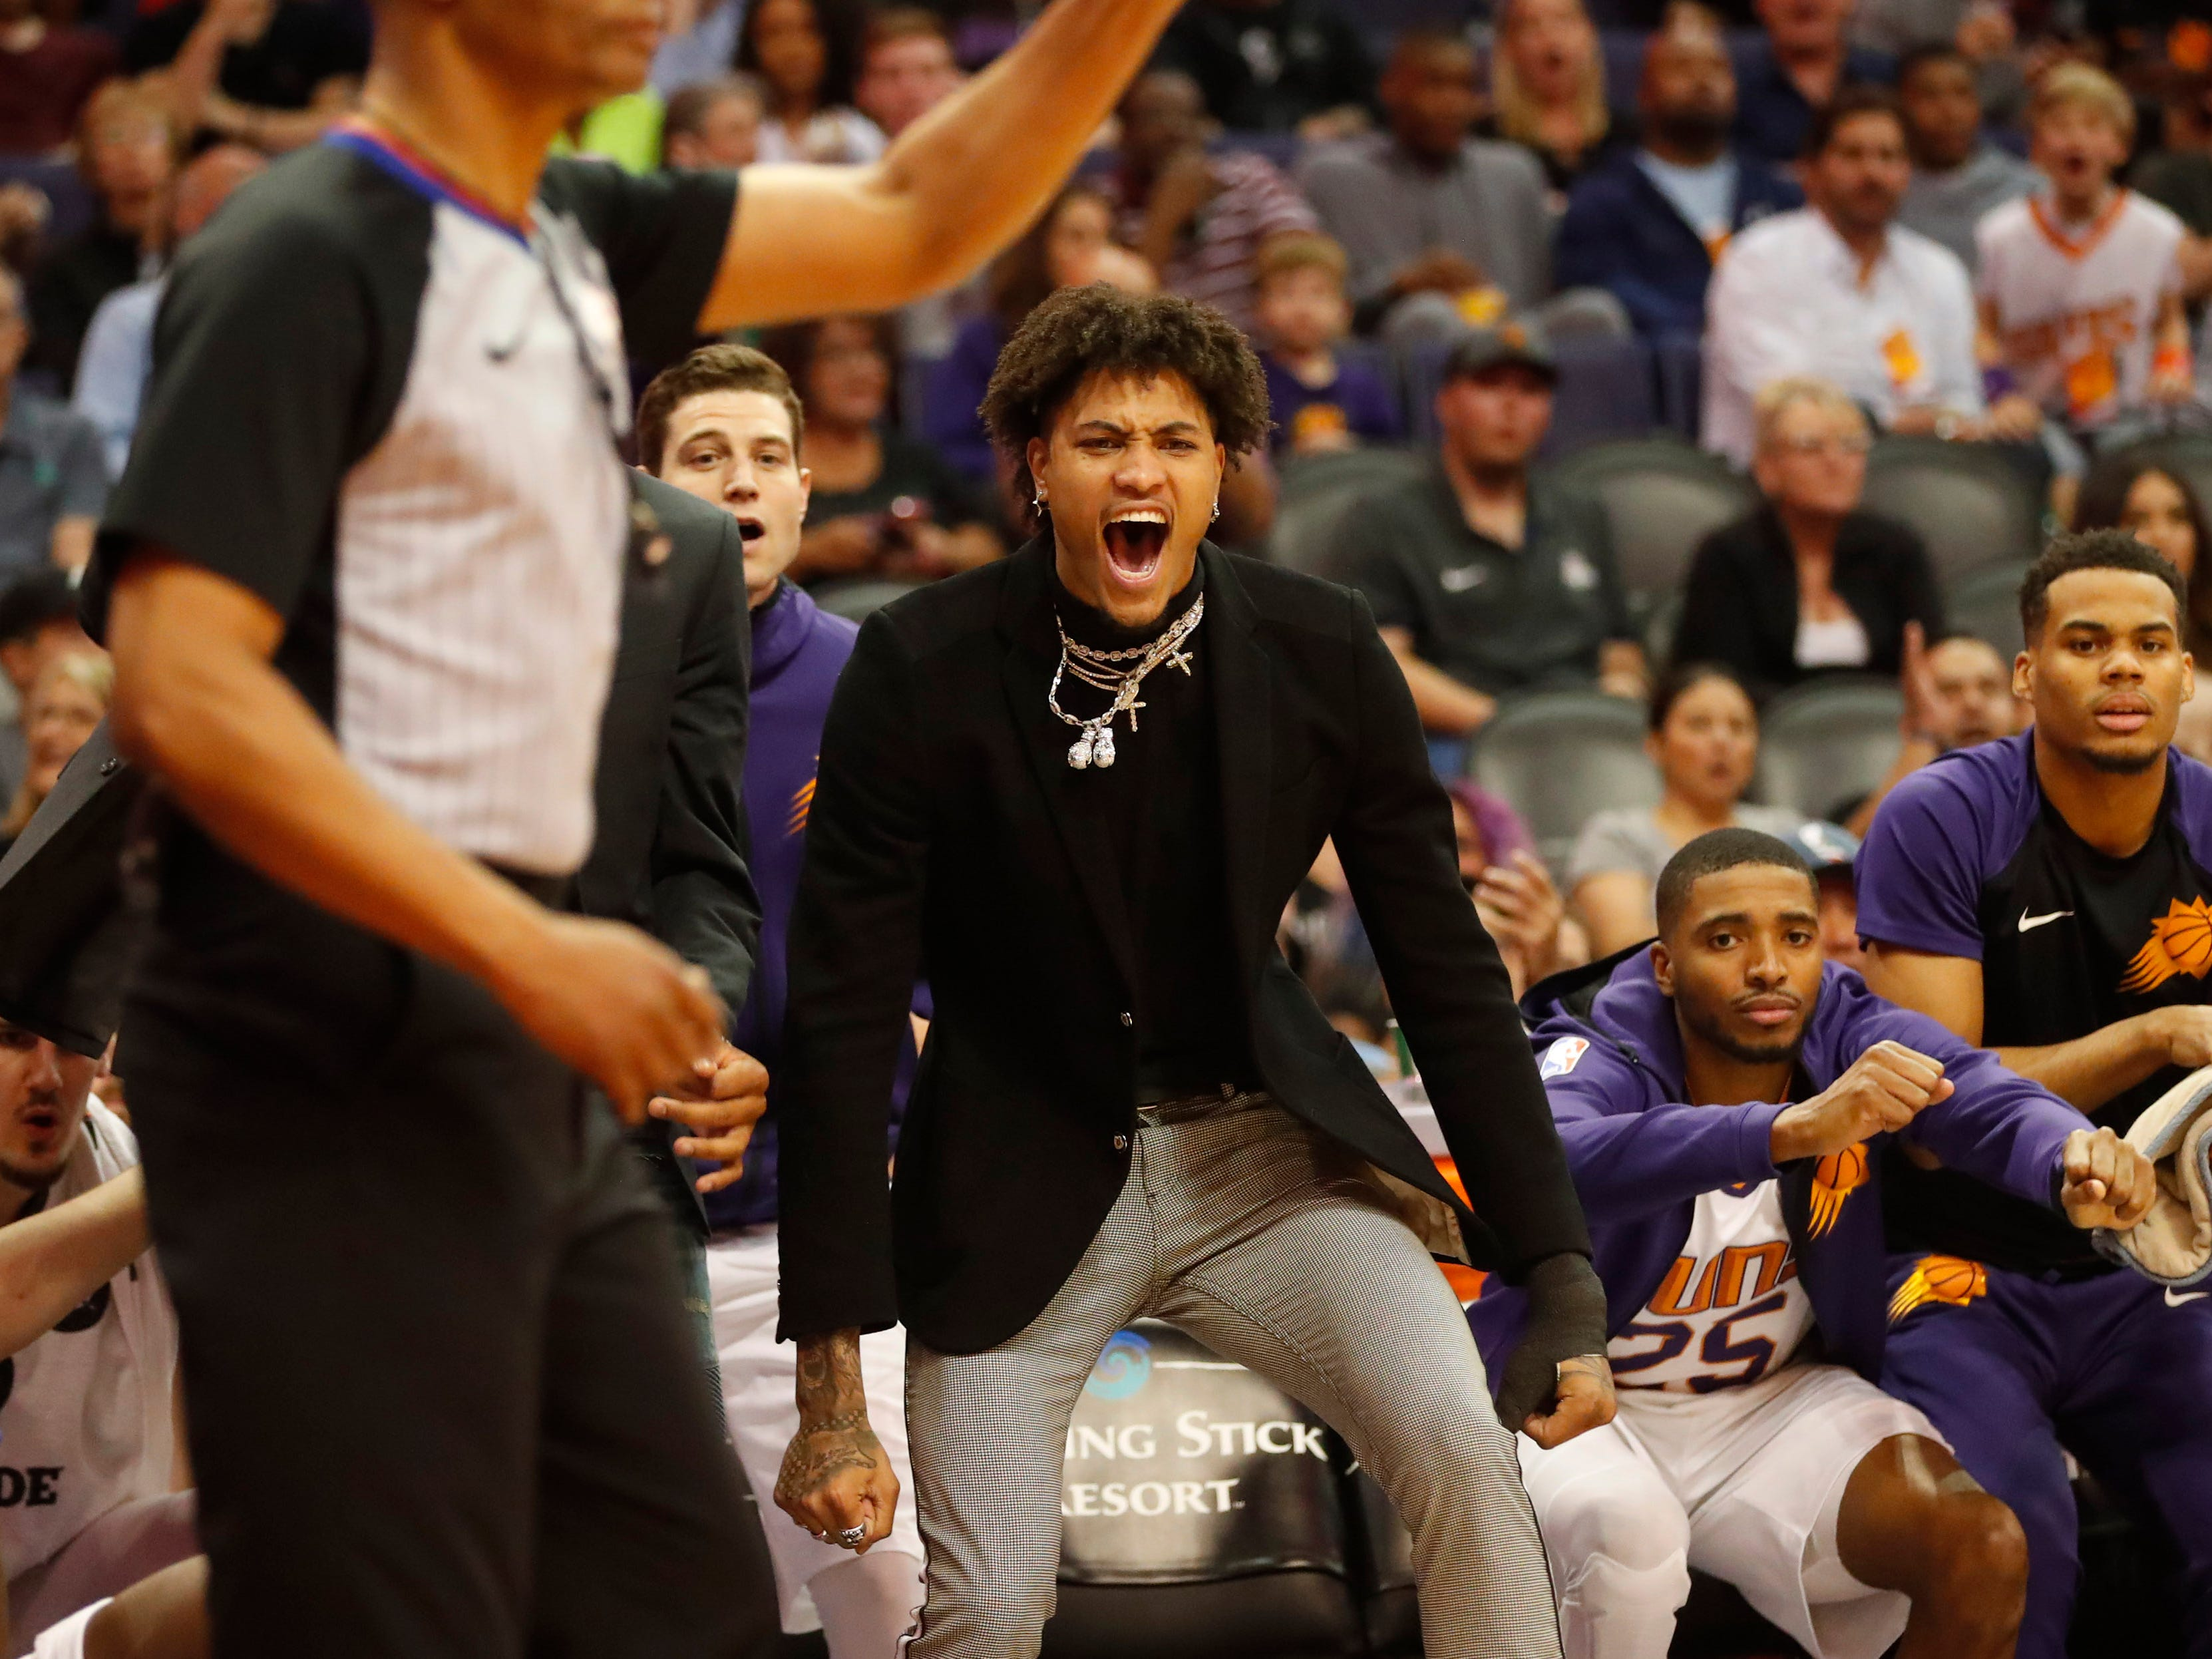 Phoenix Suns injured forward Kelly Oubre Jr. cheers for his team during the first quarter against the Washington Wizards in Phoenix March 27, 2019.